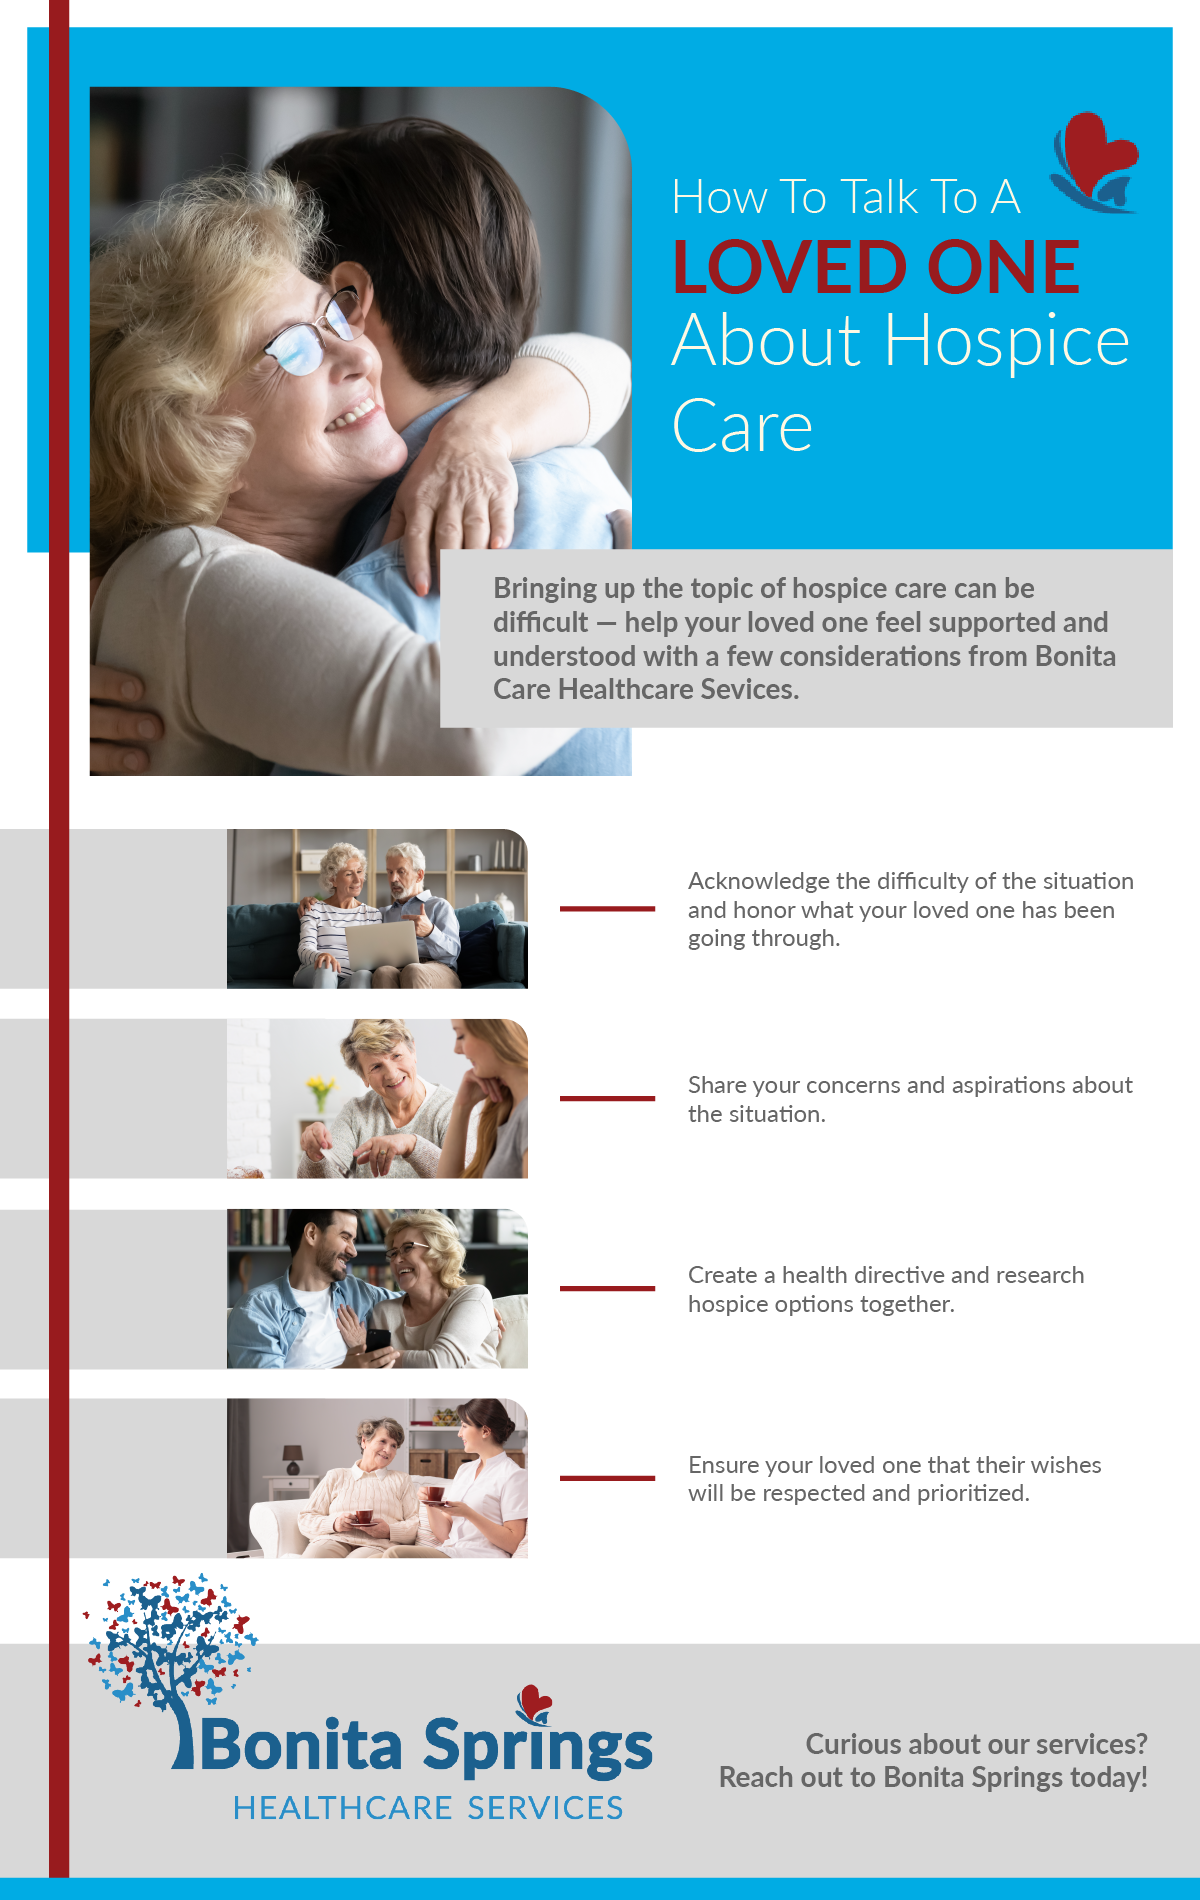 BonitaSpringsHospiceCare_M29699-Infographic-HowToTalkAboutHospiceCare-04-18-2021-01.png